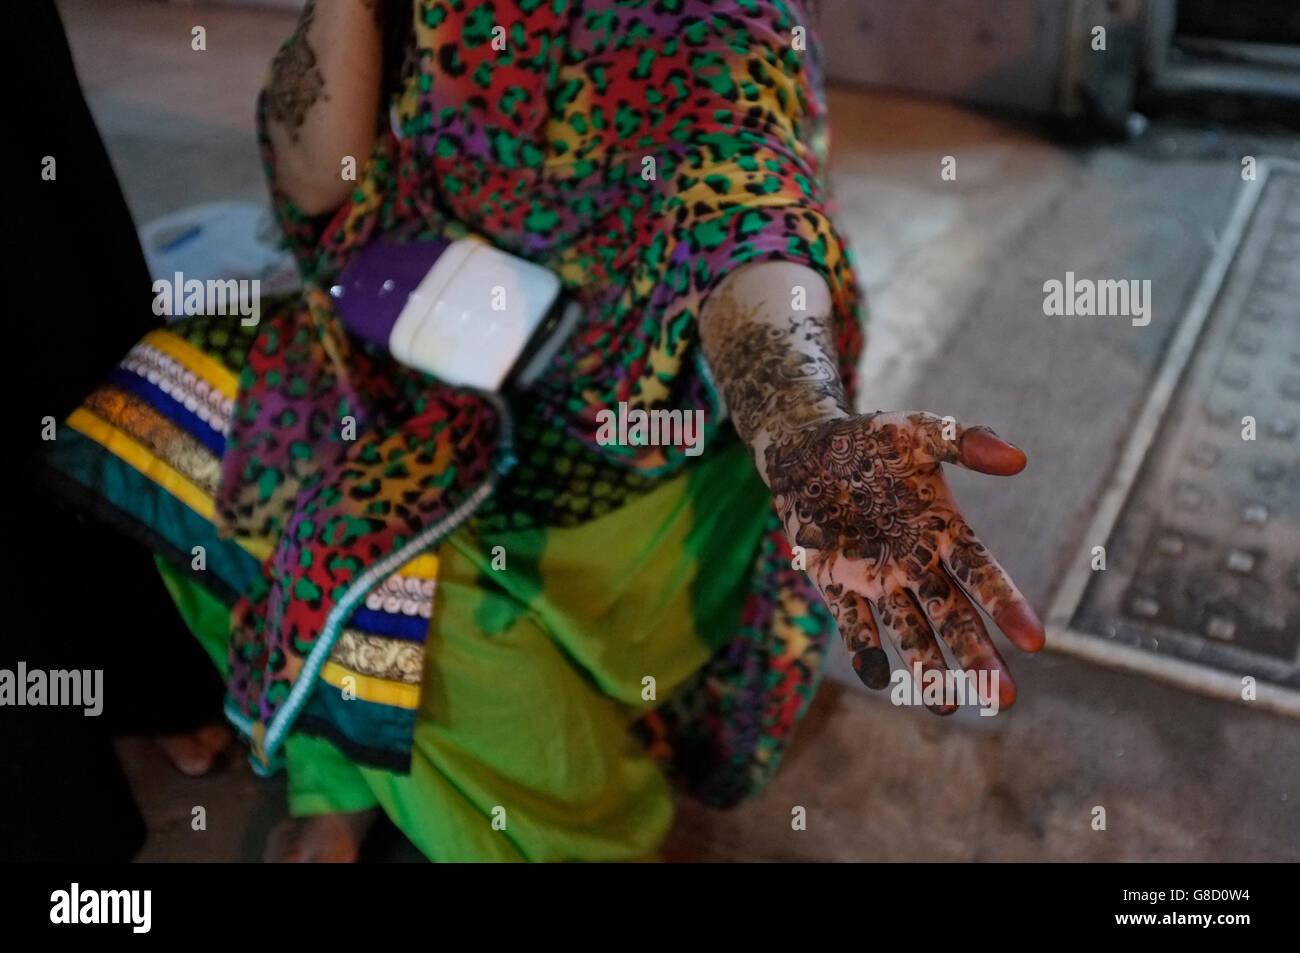 Henna Or Mehndi : Indian henna or mehndi designs on a womans hand and arm kurla